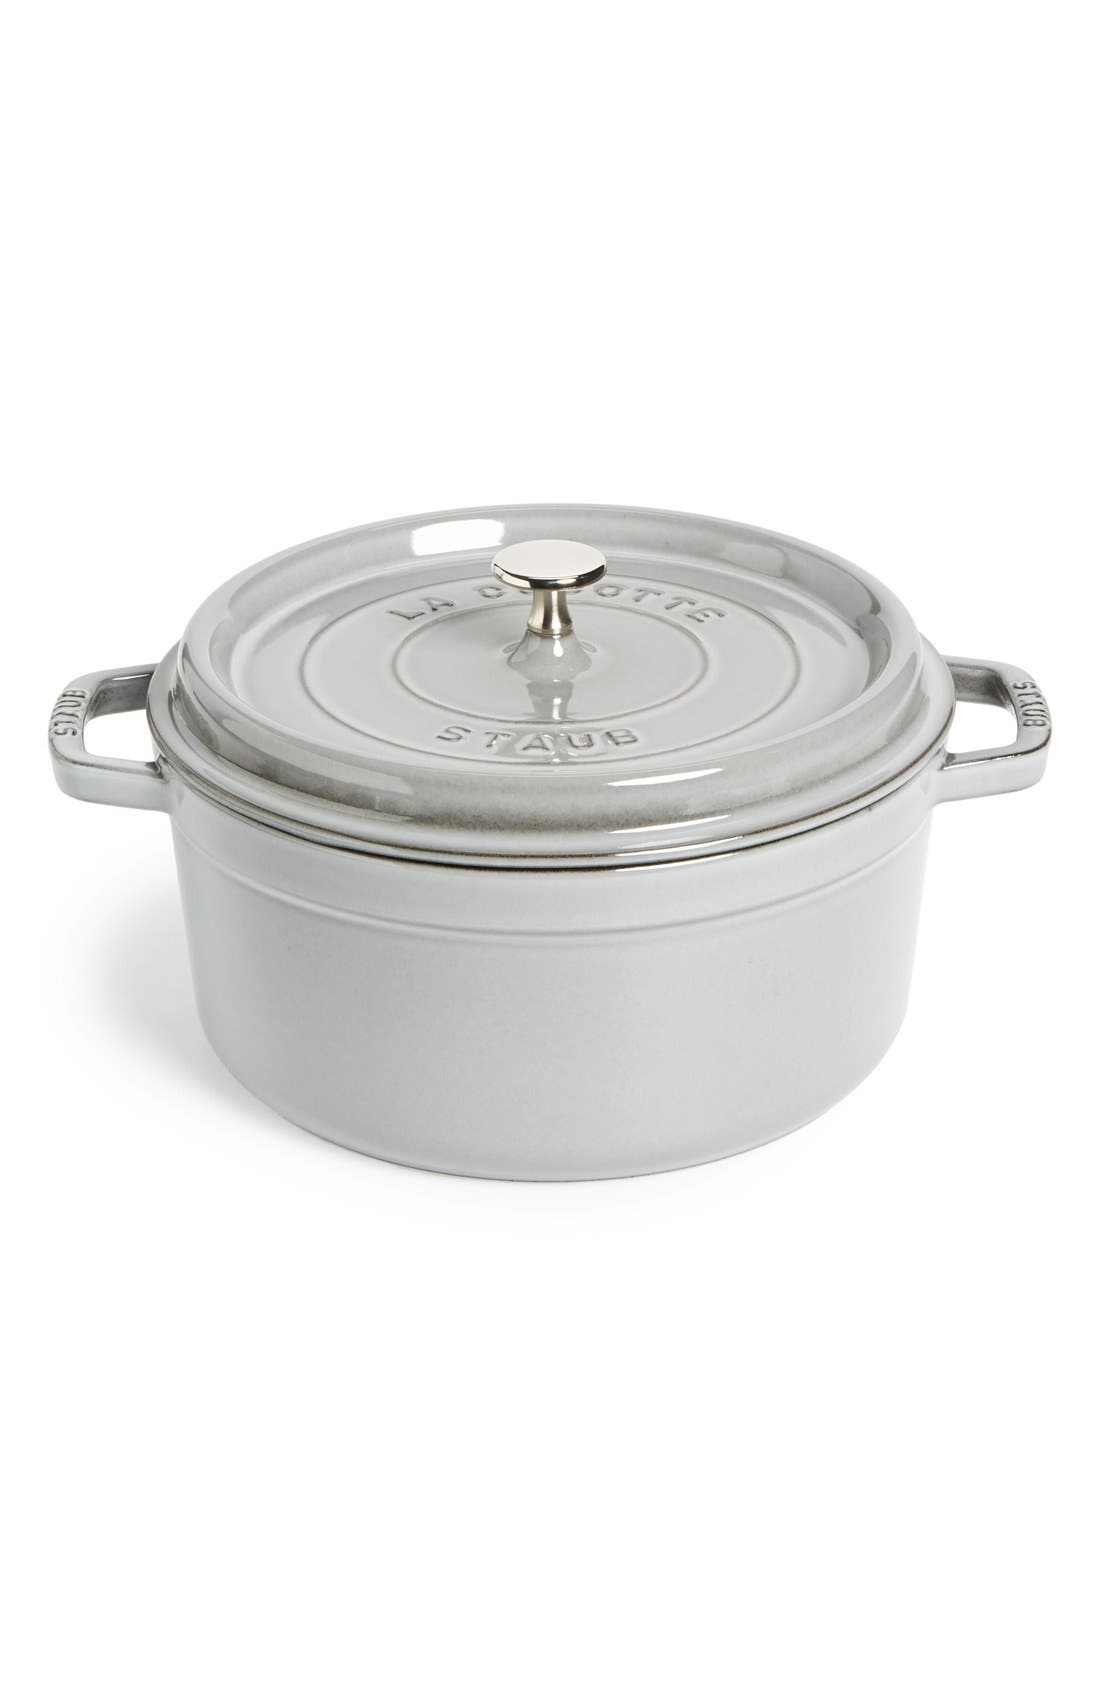 Alternate Image 1 Selected - Staub Small 5 1/2 Round Quart Enameled Cast Iron Cocotte